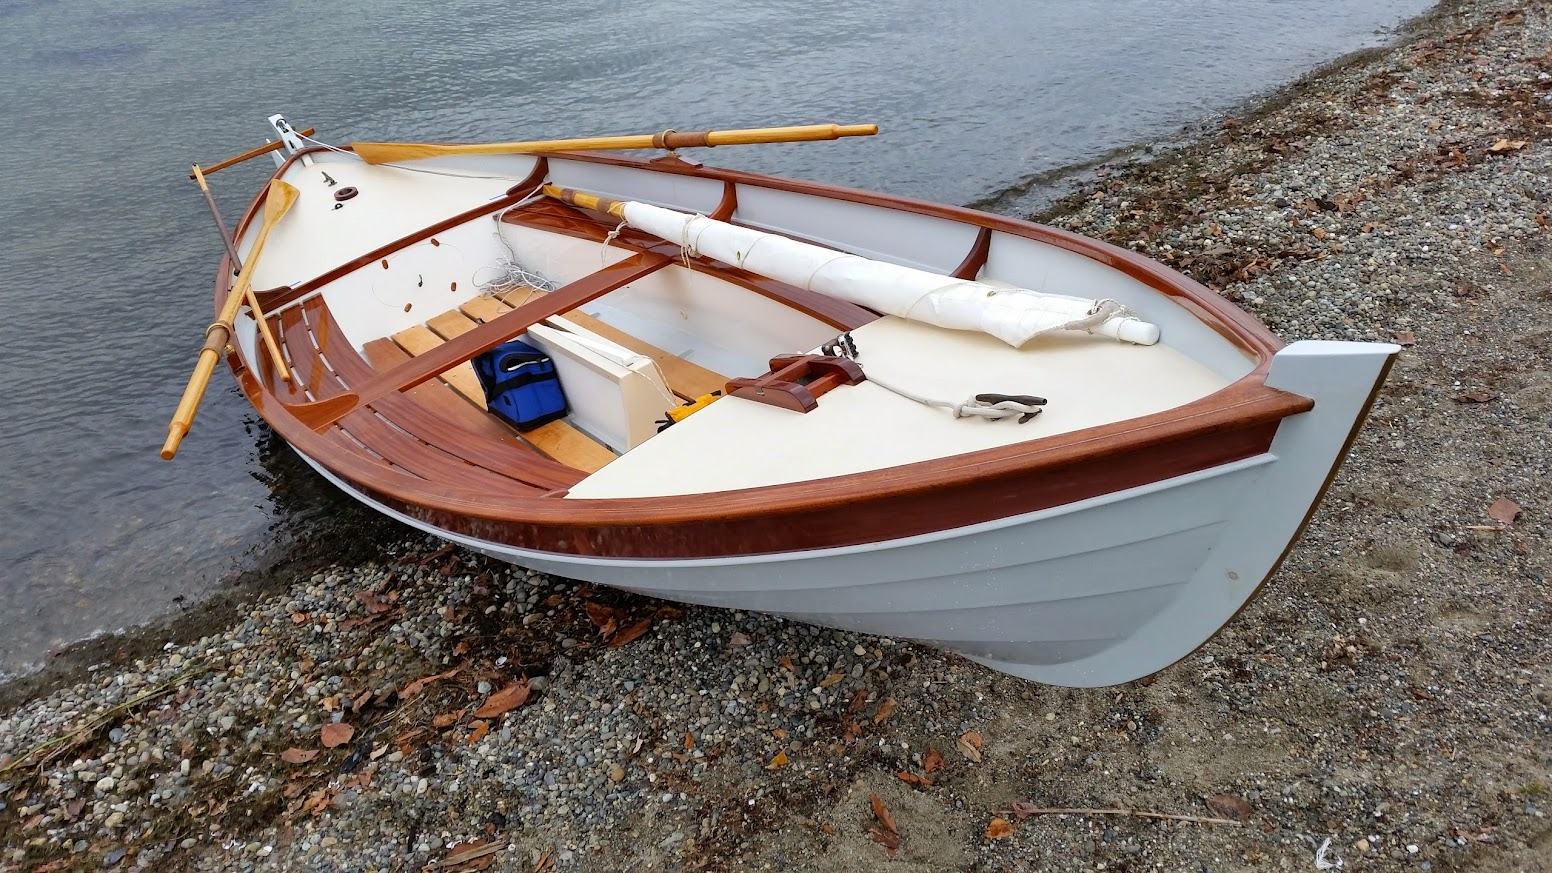 Finally launched my Iain Oughtred designed Arctic Tern : buildaboat